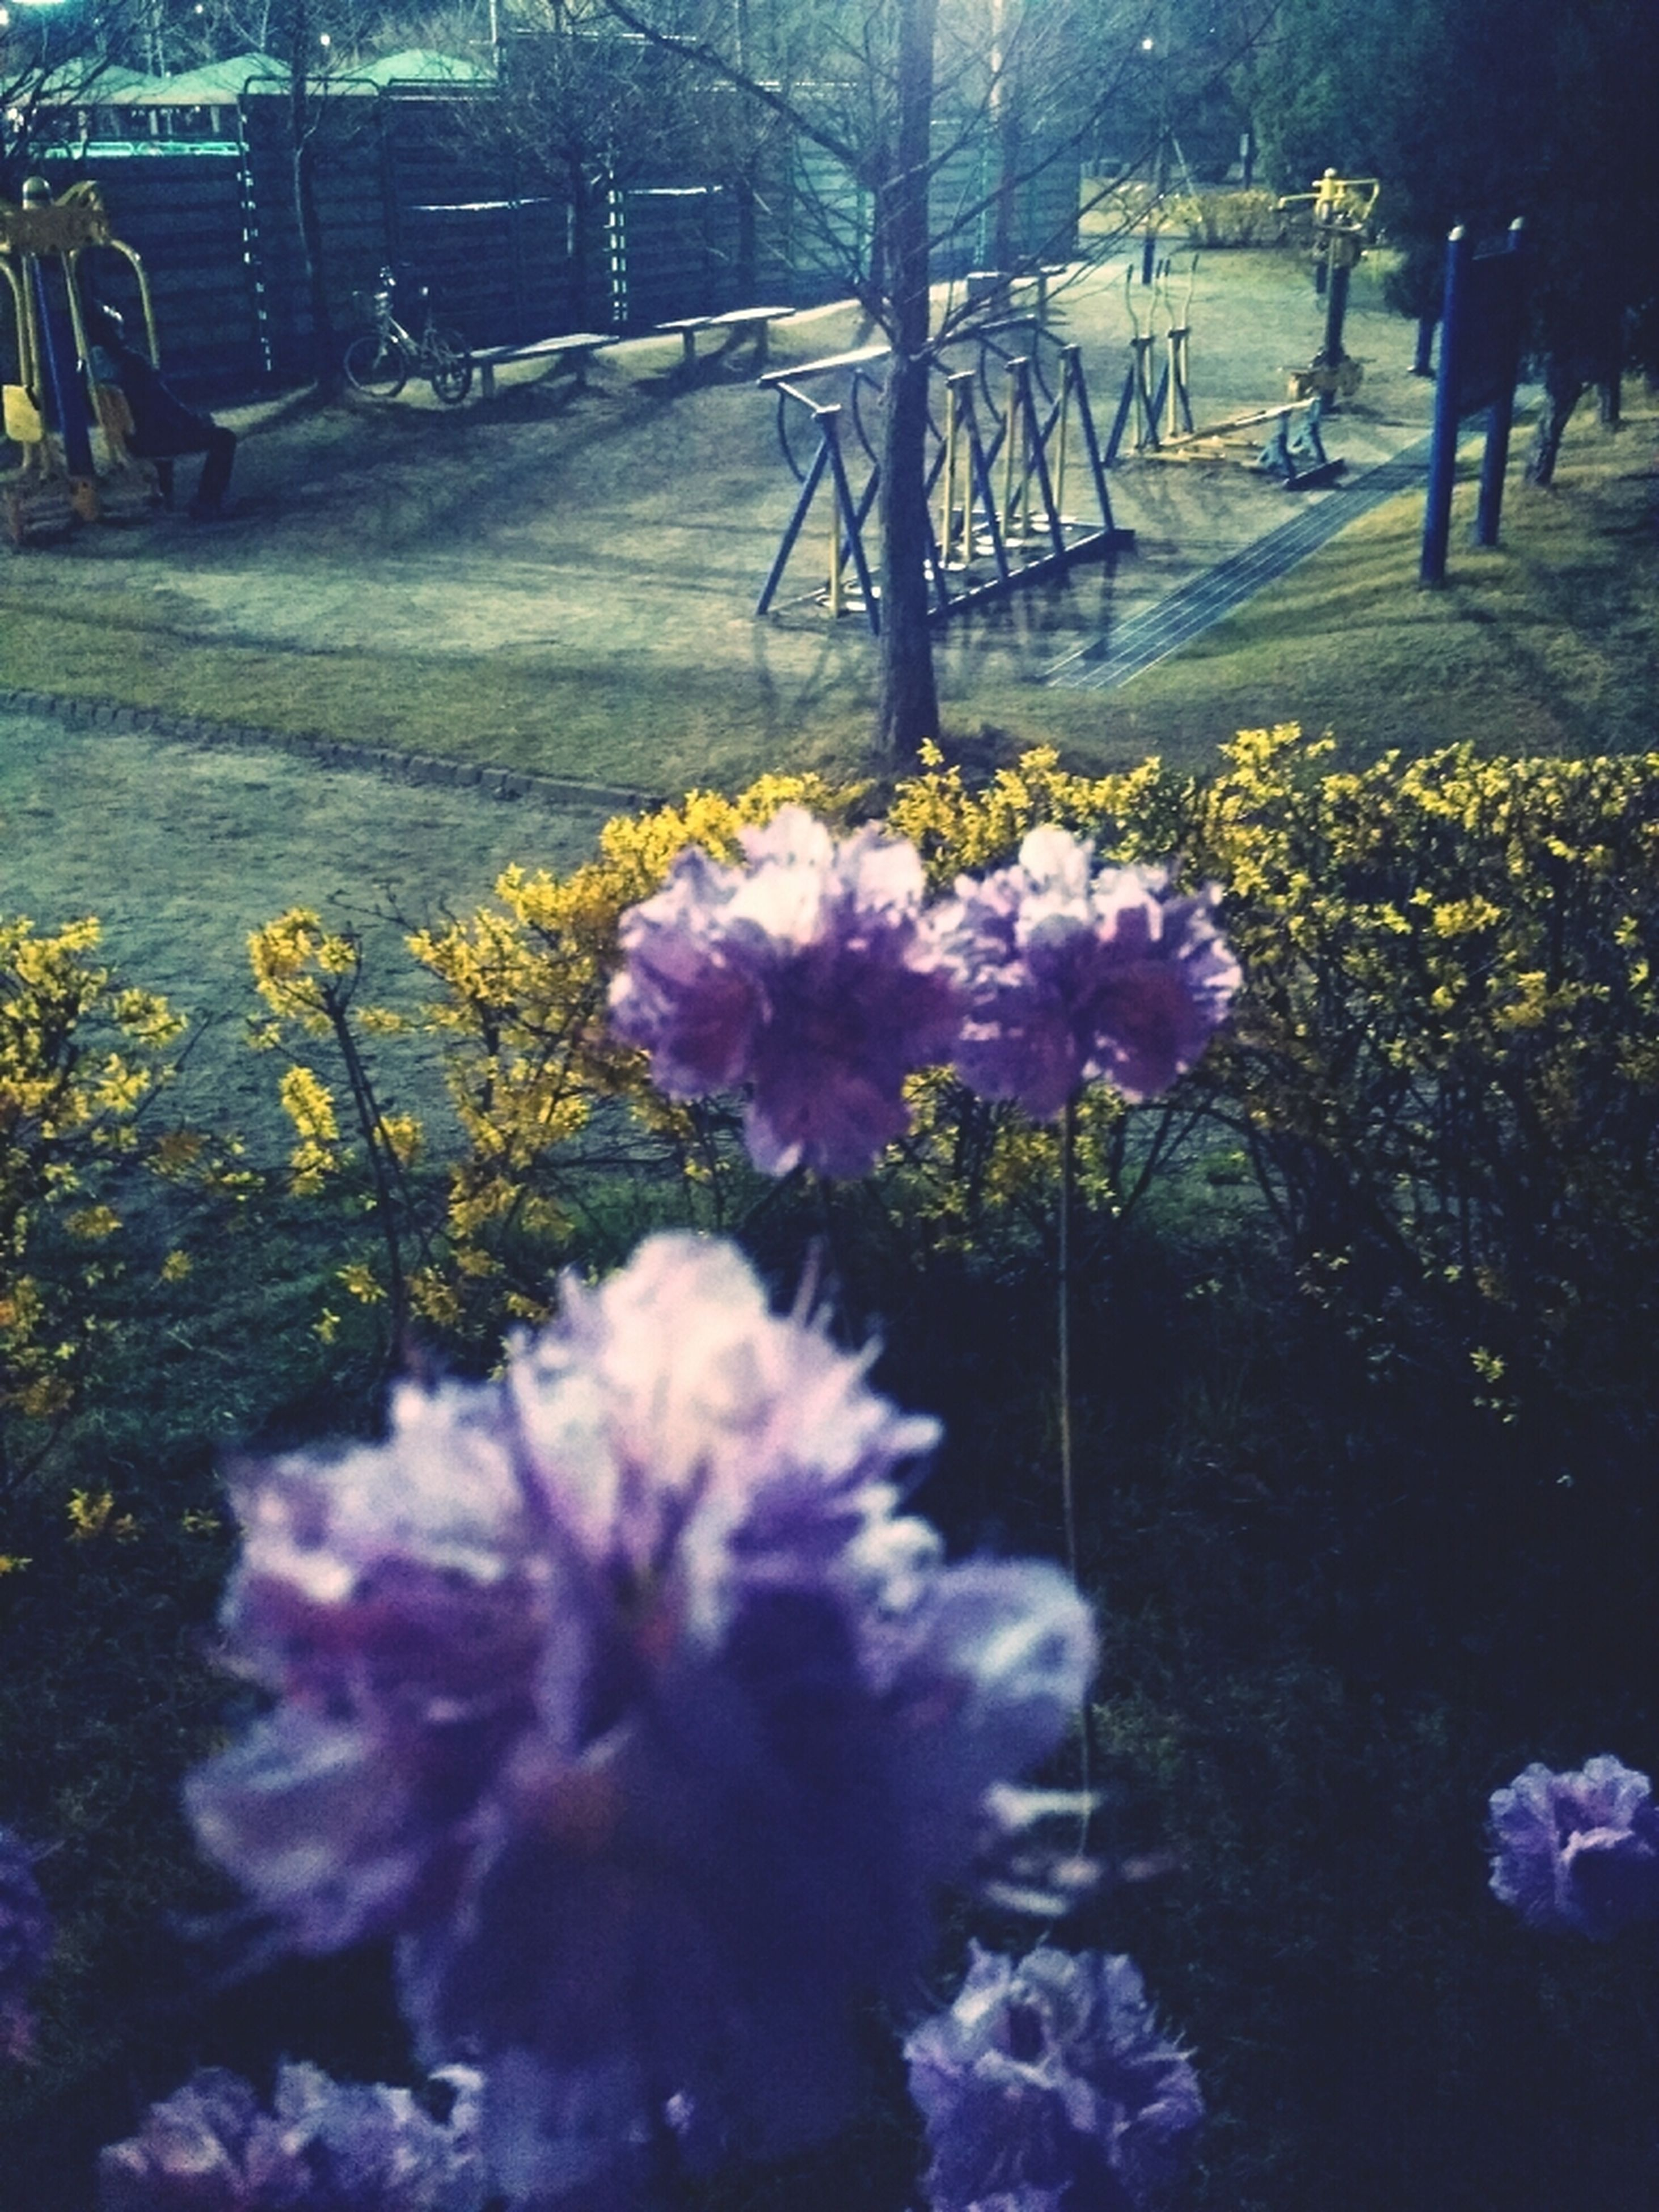 flower, transportation, road, freshness, growth, purple, fragility, nature, street, land vehicle, beauty in nature, blooming, plant, car, mode of transport, outdoors, incidental people, sunlight, high angle view, park - man made space